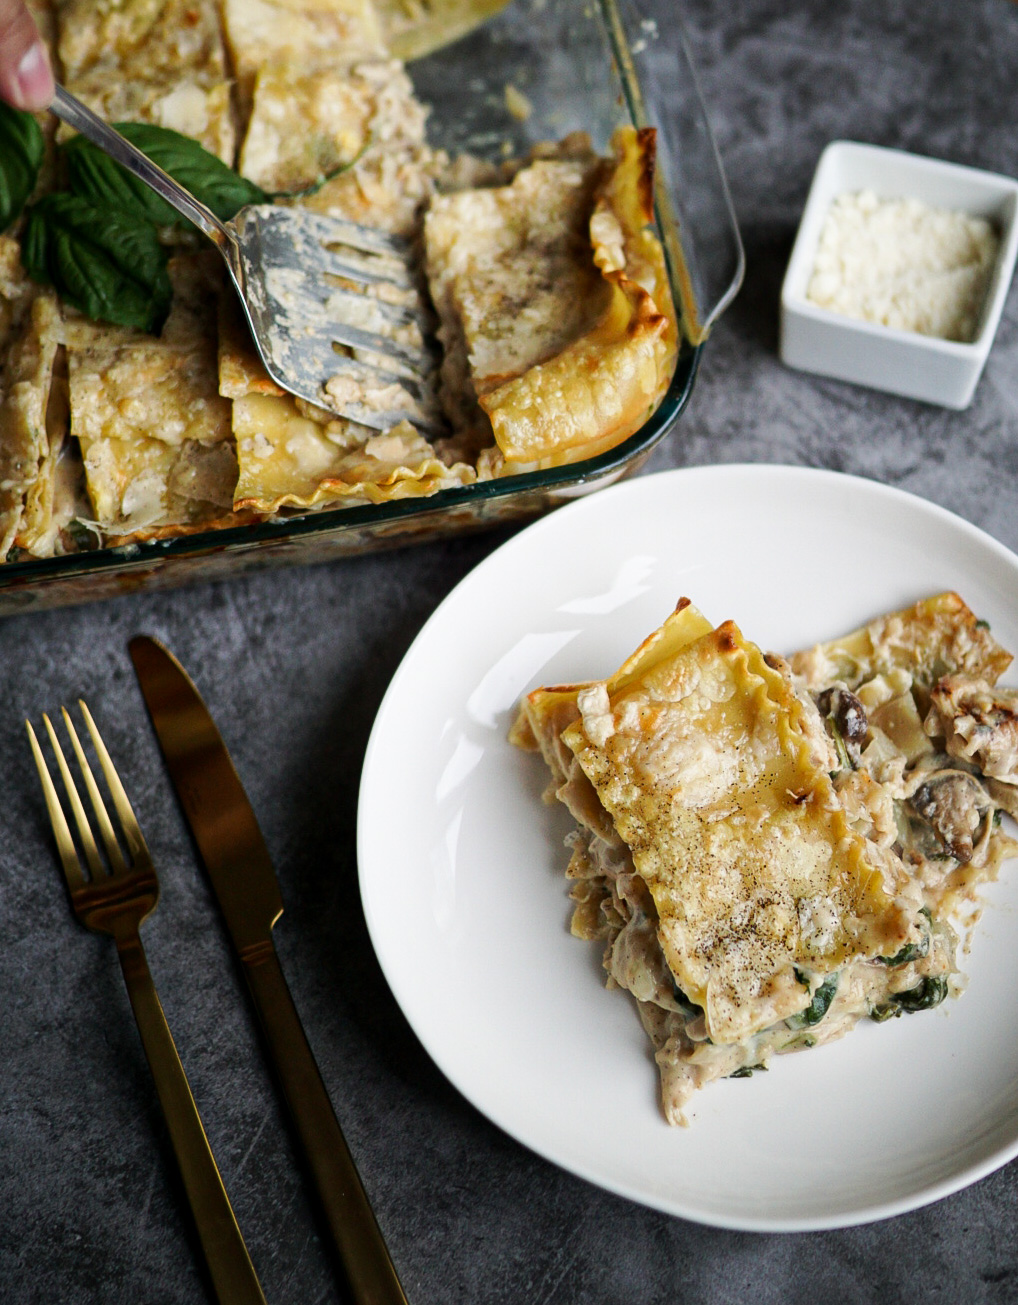 Spinach and mushroom lasagna with chicken